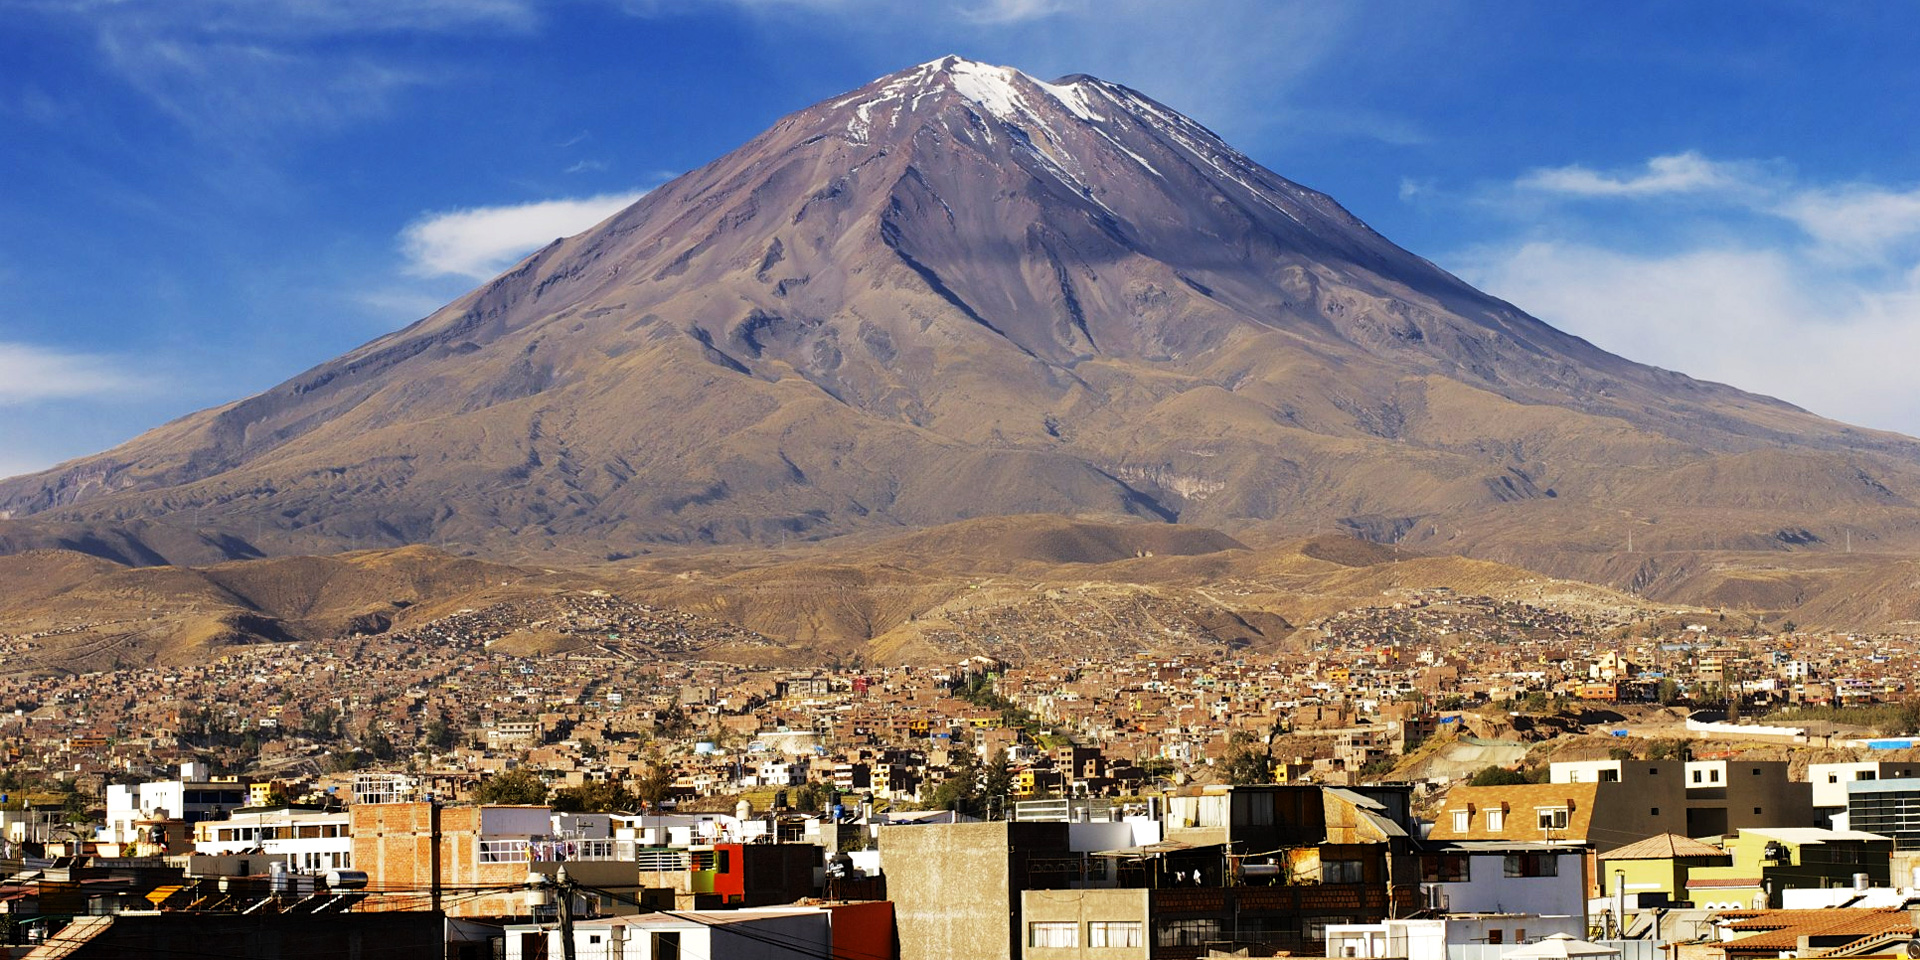 Destination 4 – Arequipa